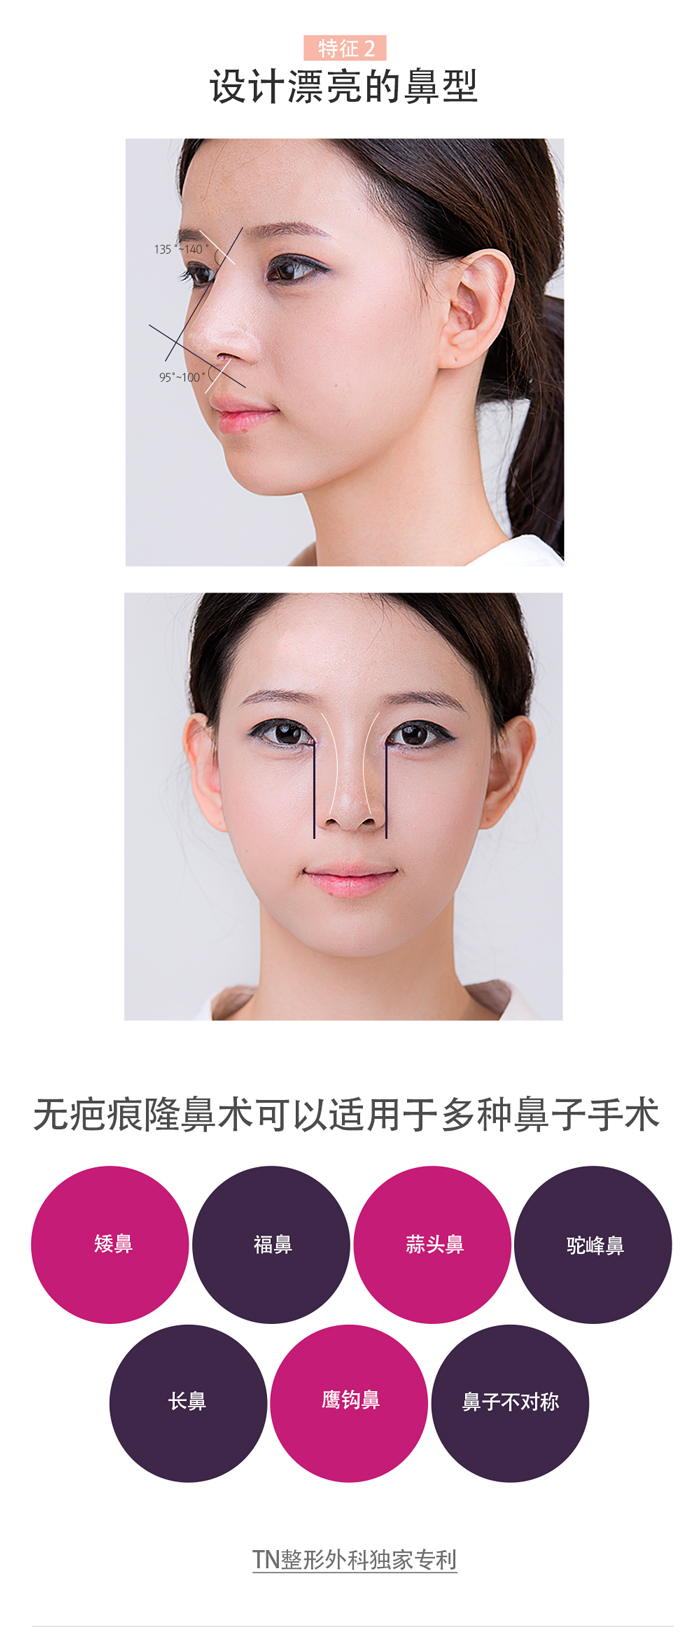 韩国TN整形外科 X AllaboutMEI 隆鼻术 特价活动 / beautiful and natural shape to create by no scar rhinoplasty